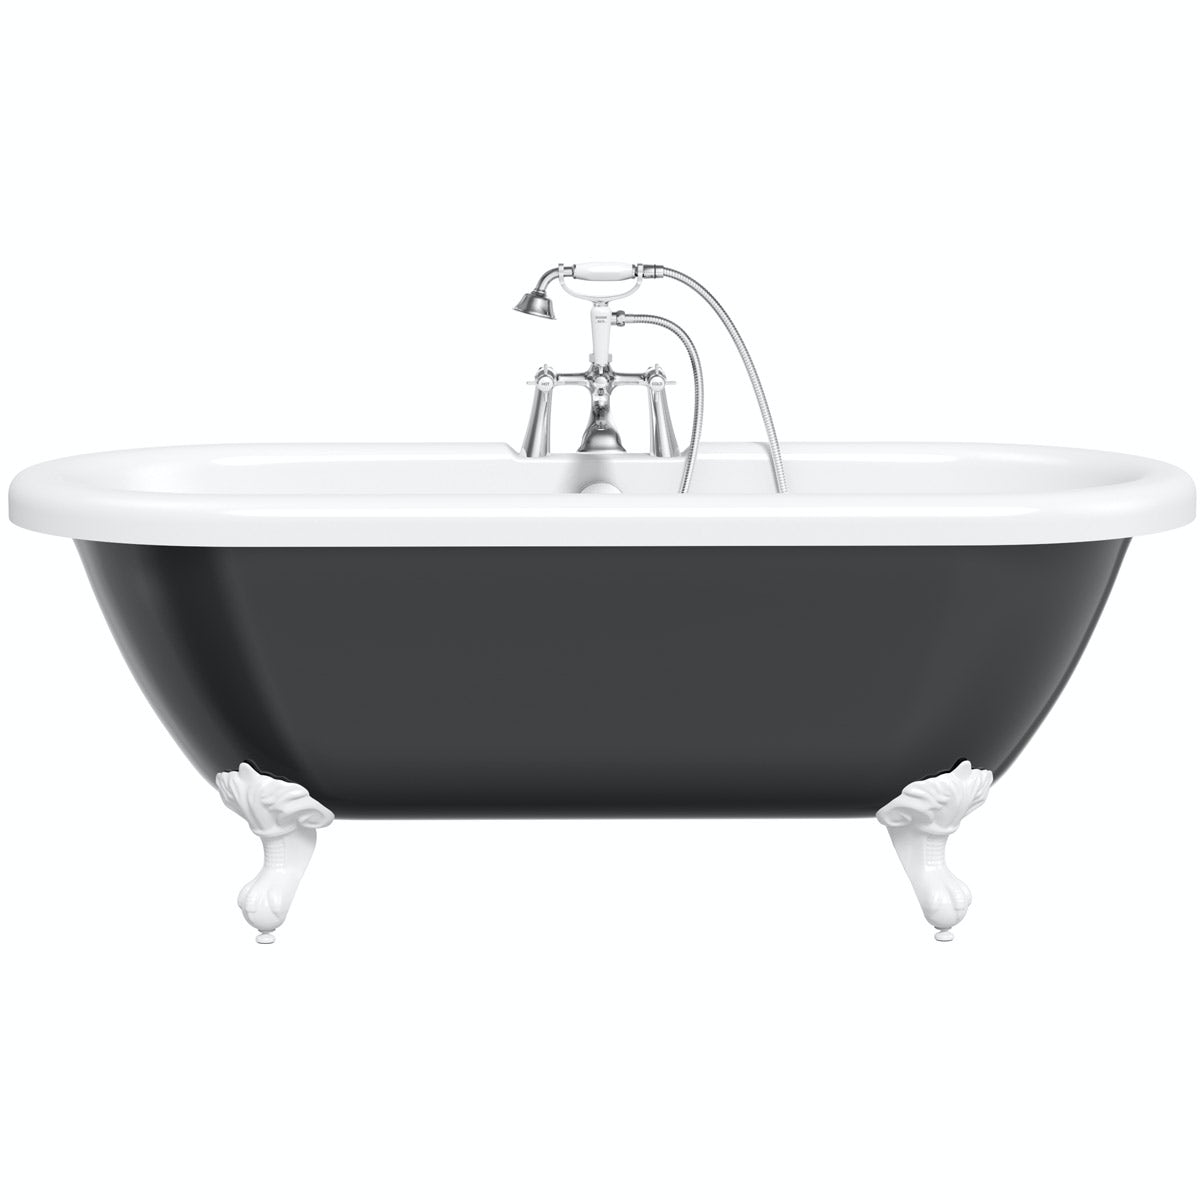 The Bath Co Dulwich Black Roll Top Bath With White Ball And Claw Feet Victoriaplum Com